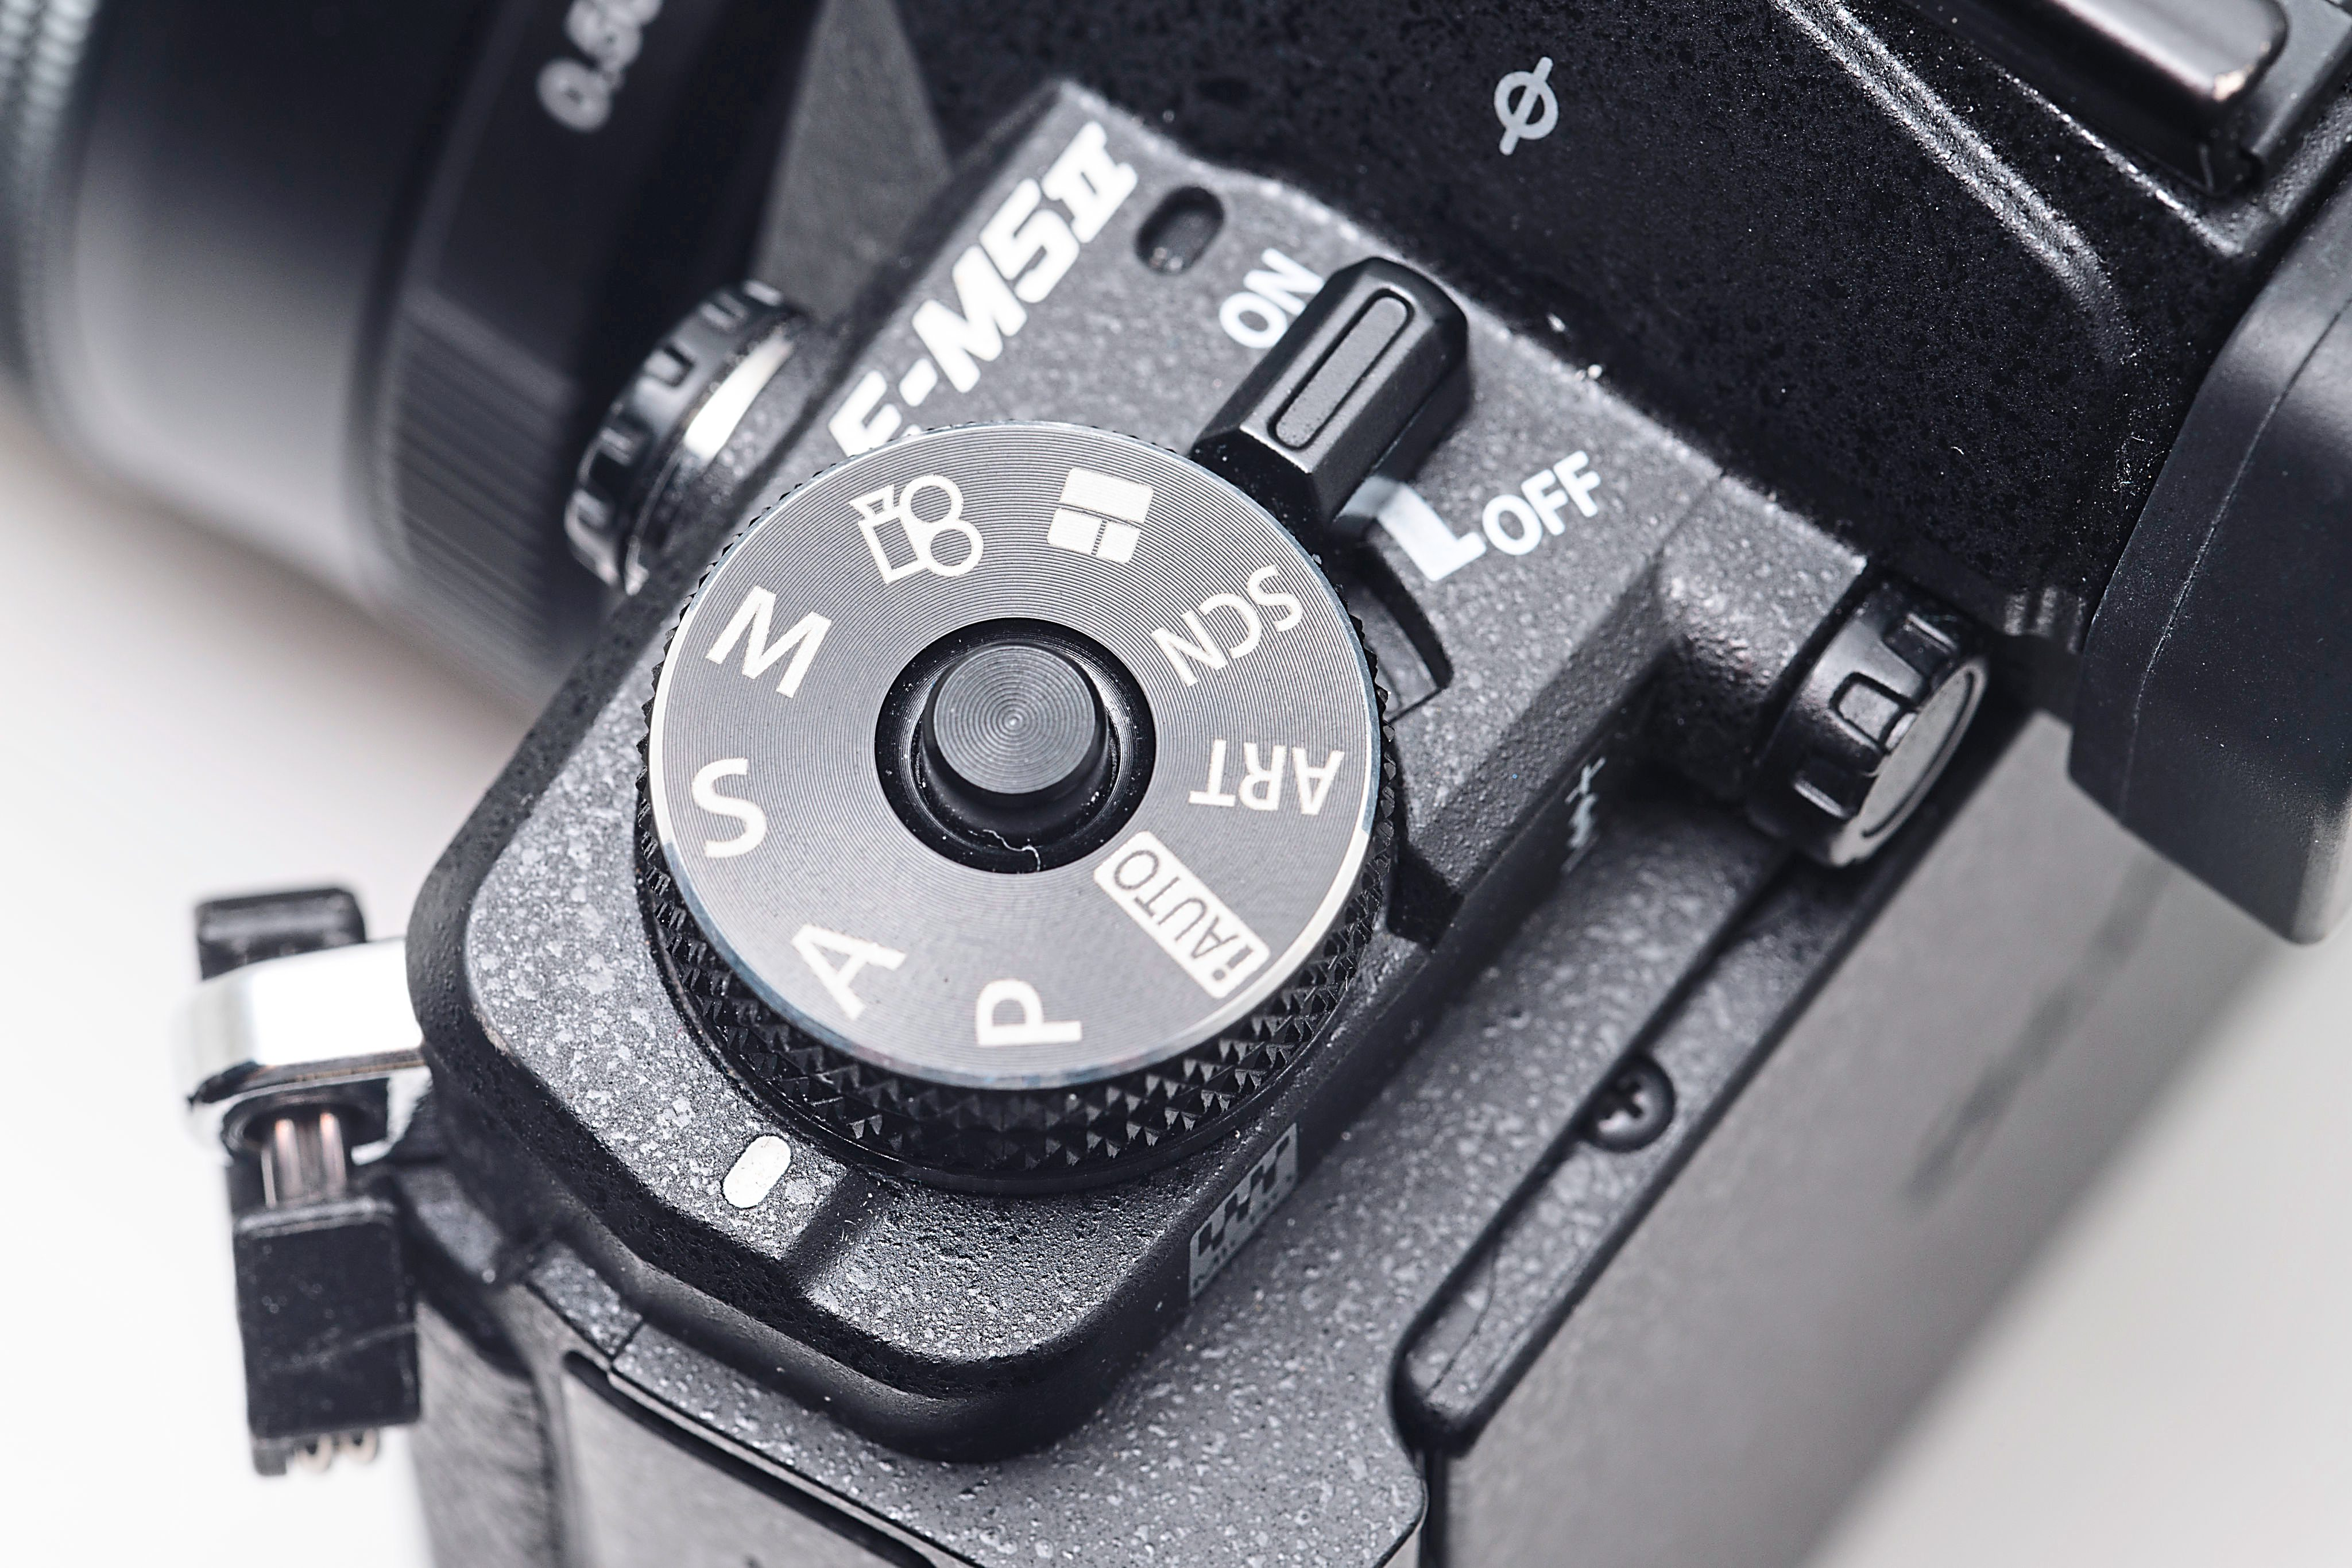 Lock: the mode dial on the OM-D E-M5 Mark II can be locked down to prevent accidentally moving out of the set mode by pressing the button in the centre of the dial.